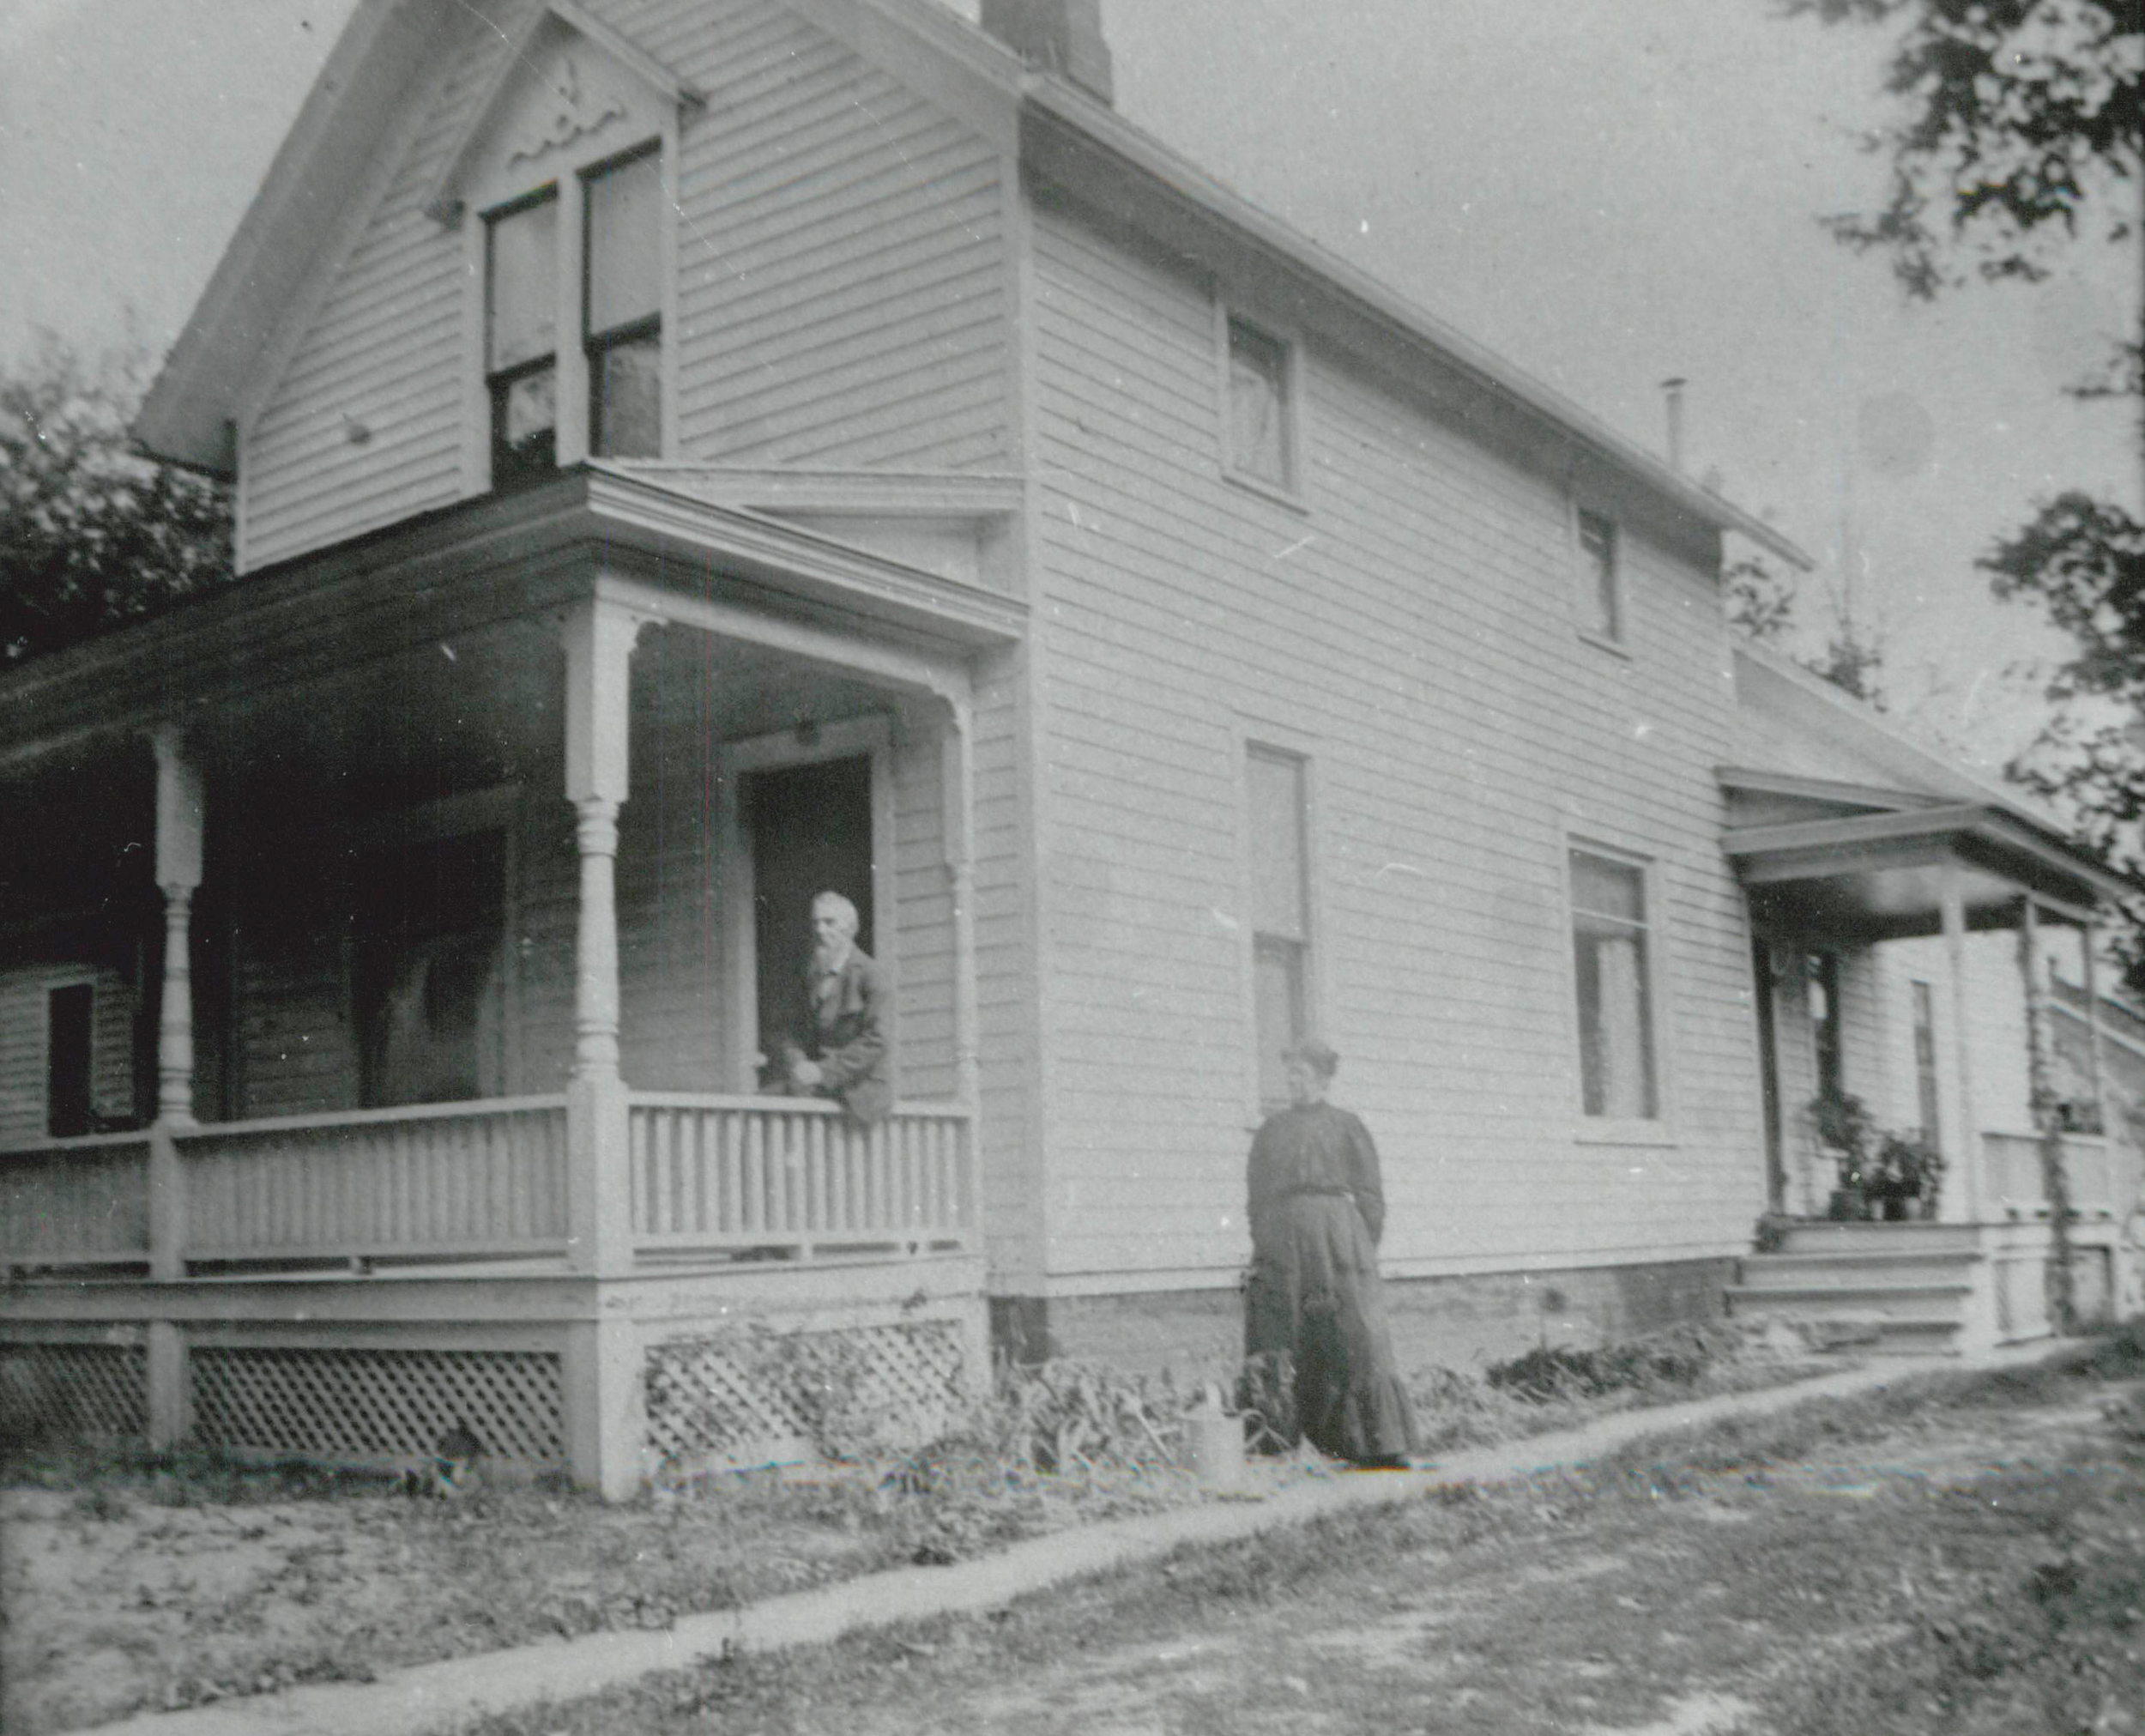 James and Abigail Curwood at their home on John Street (known today as Curwood Castle Drive)